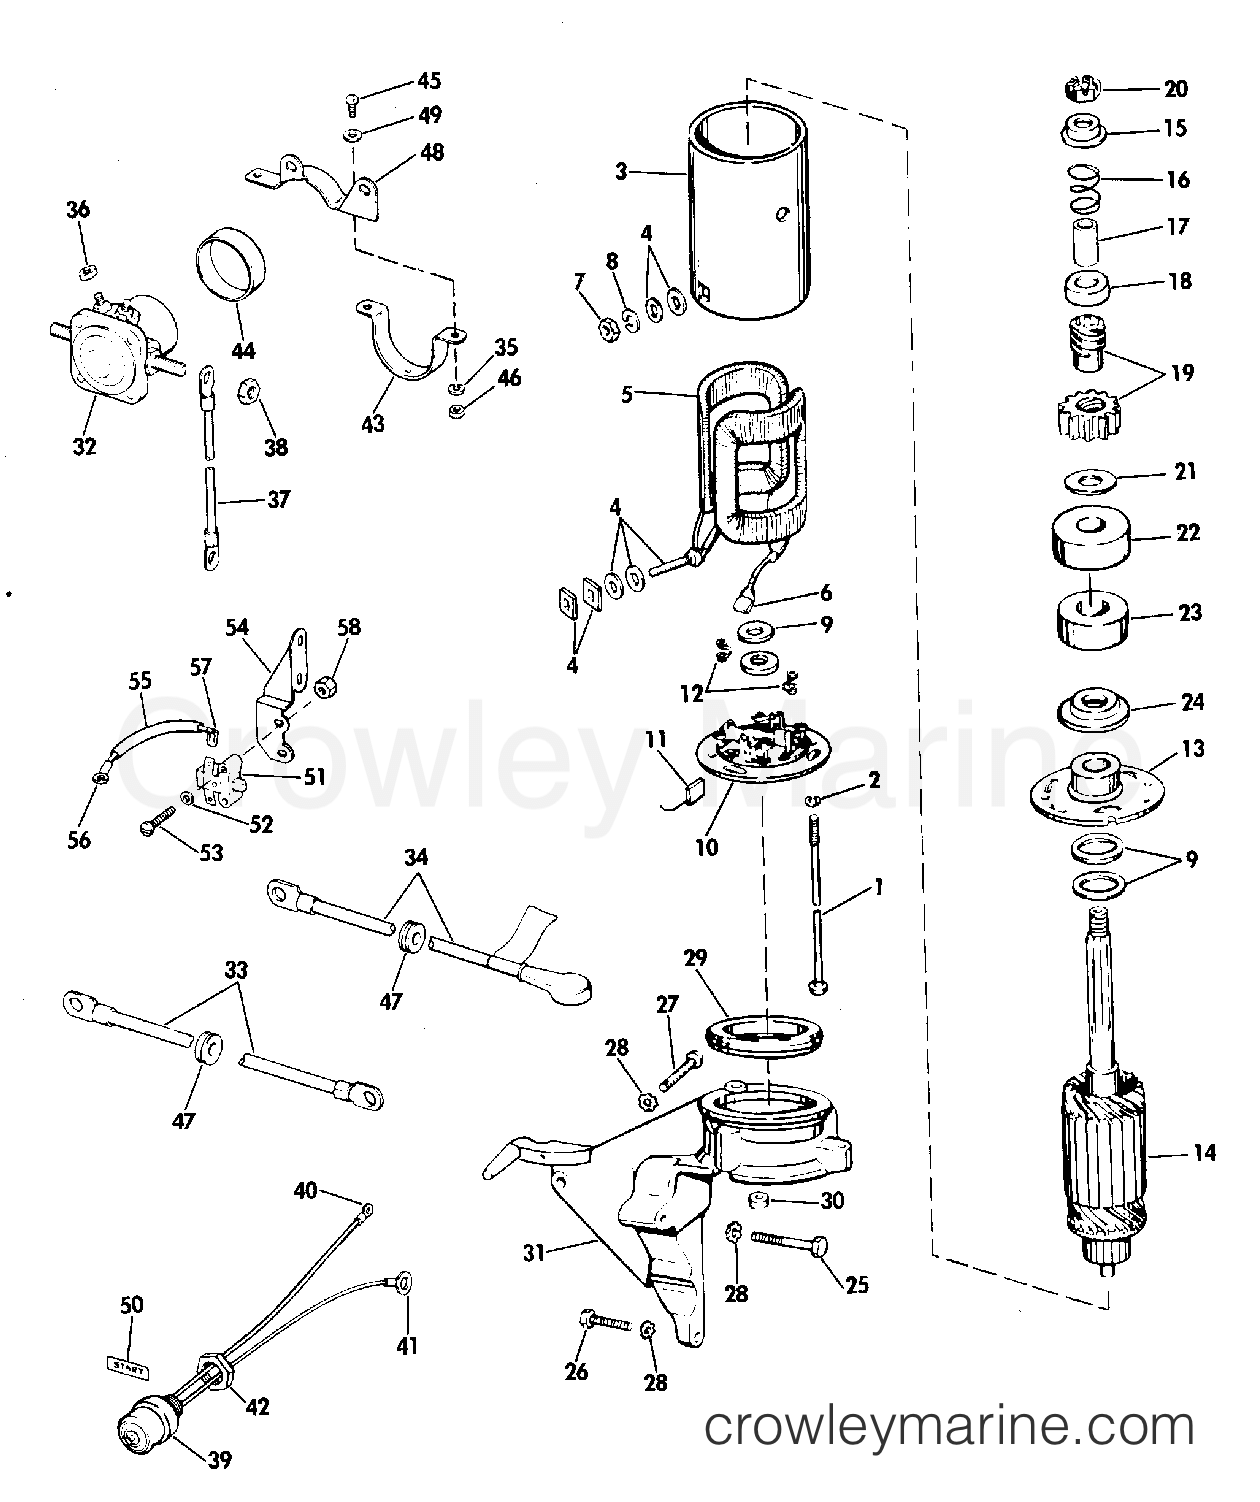 Omc Control Box Parts Diagram : 29 Wiring Diagram Images